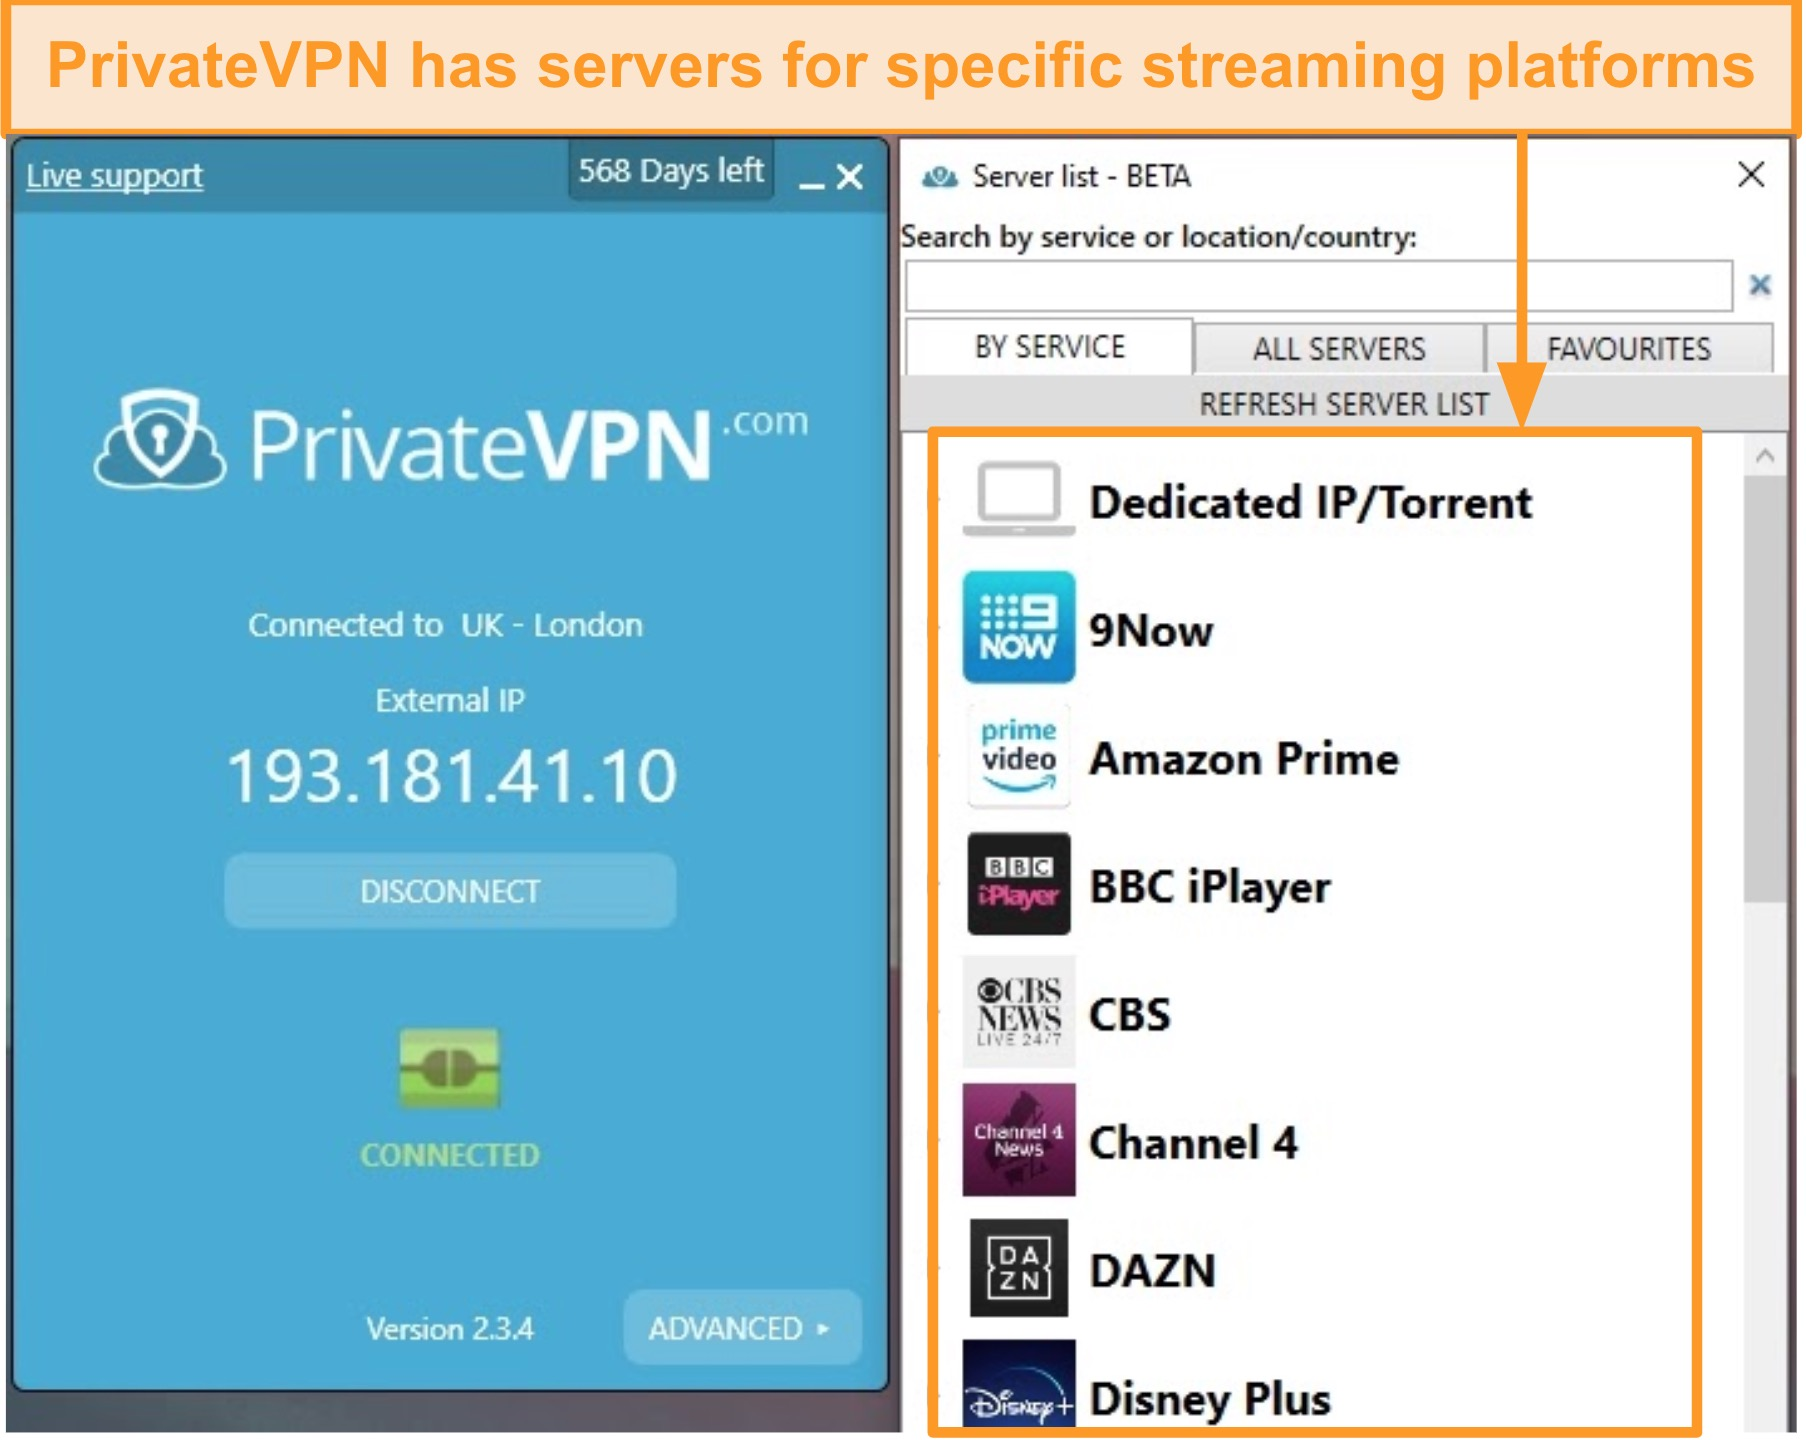 Screenshot of PrivateVPN's Windows app showing its optimized streaming servers.